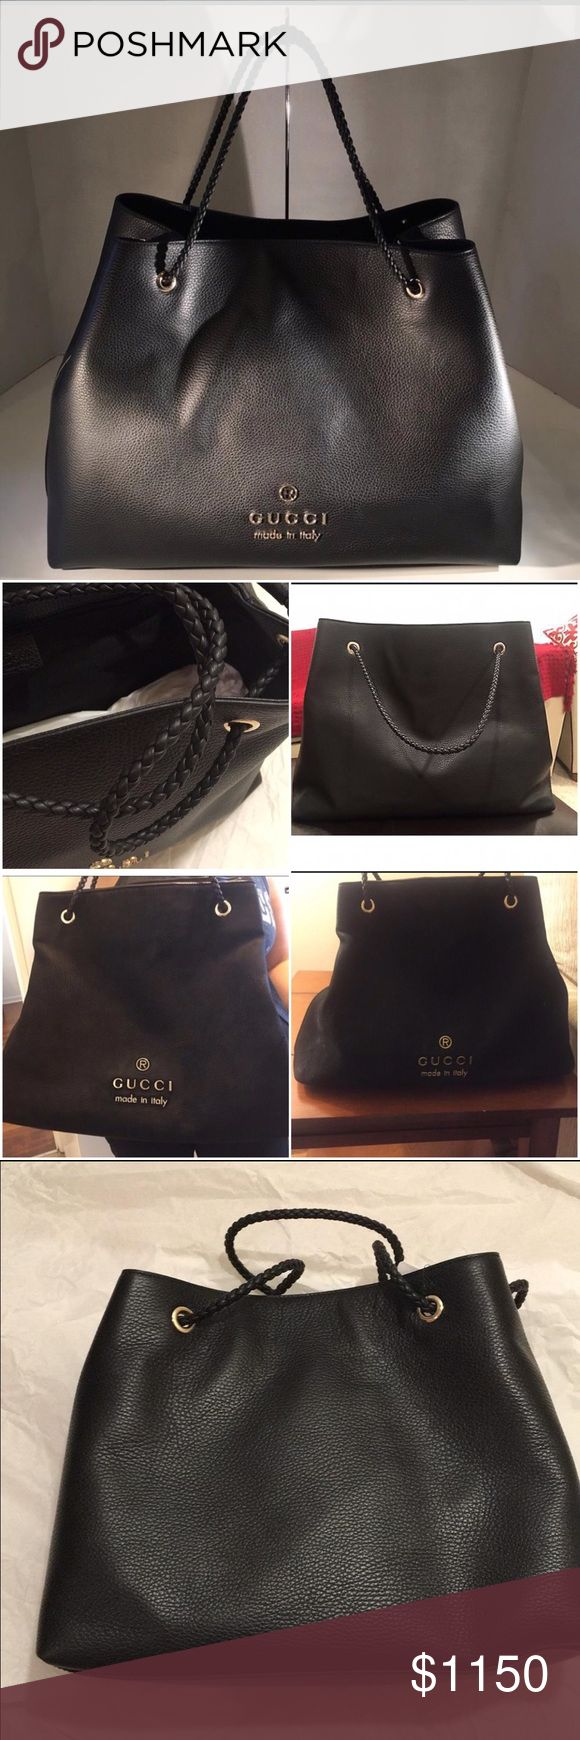 gucci bags used. 🚫sold🚫🌹hp🌹gucci gifford tote bag black beautiful looking gucci bag. leather x used but in great condition. bags s